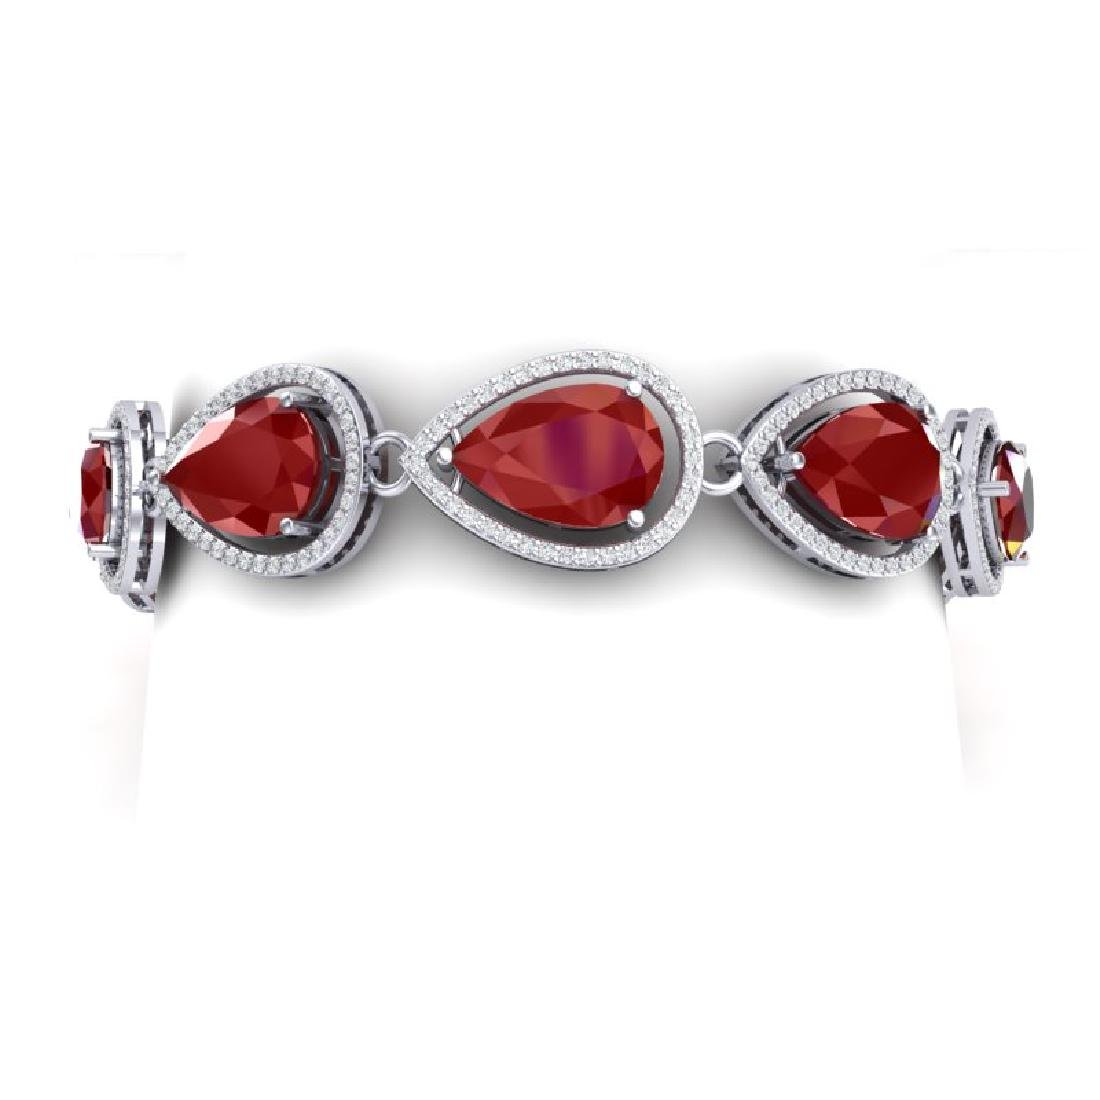 28.31 CTW Royalty Ruby & VS Diamond Bracelet 18K White